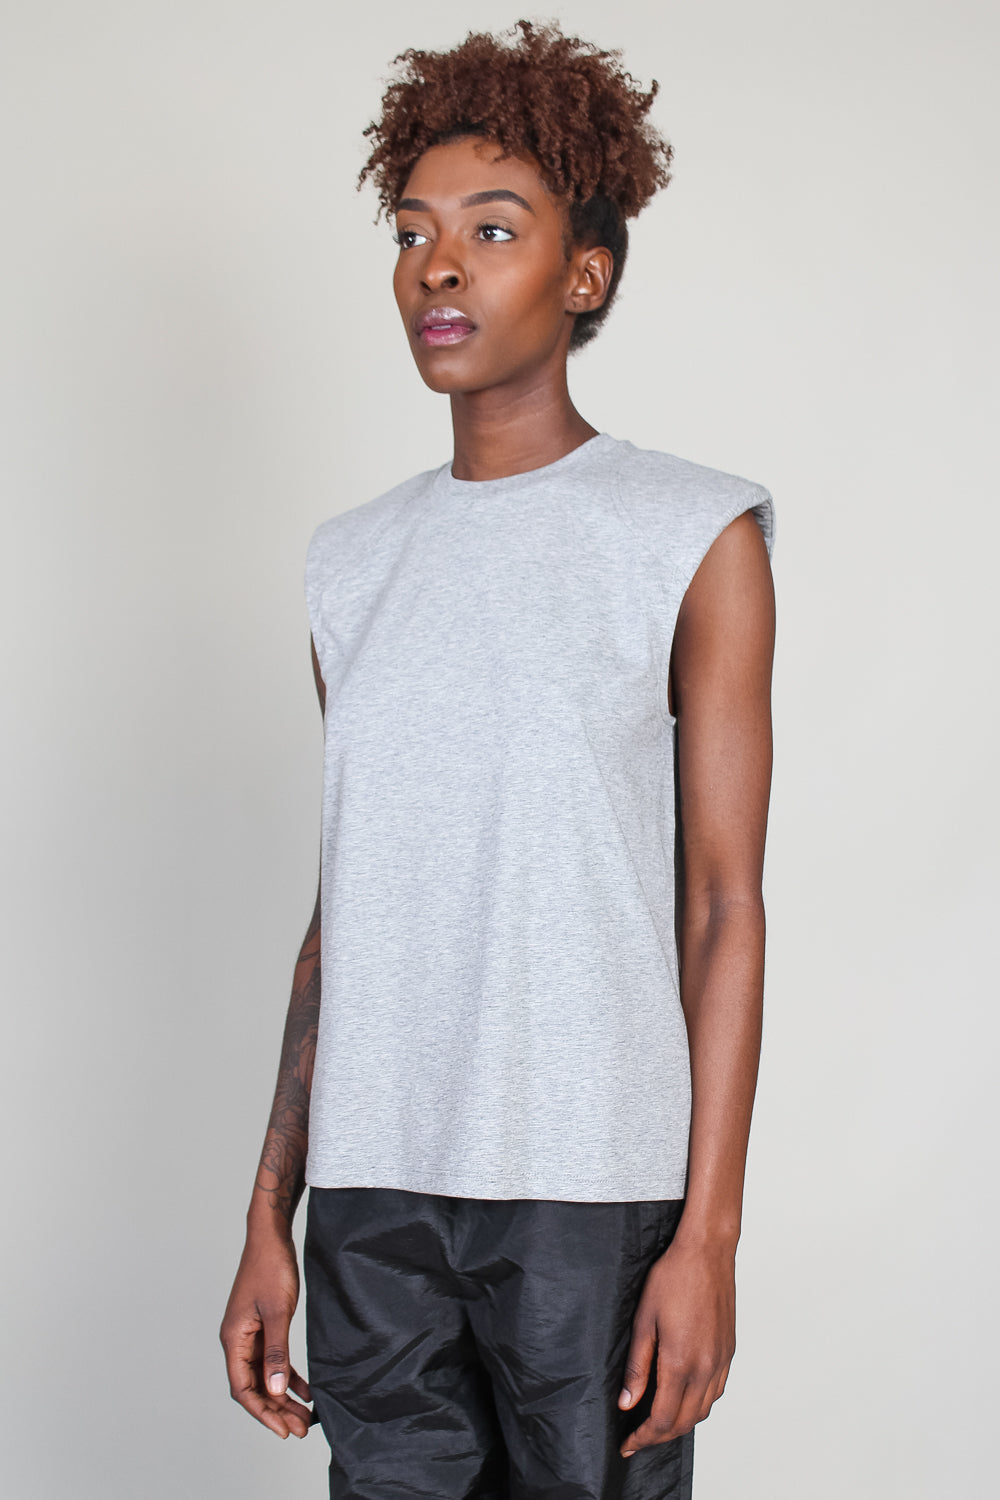 Padded Shoulder Sleeveless T Shirt in Heather Grey